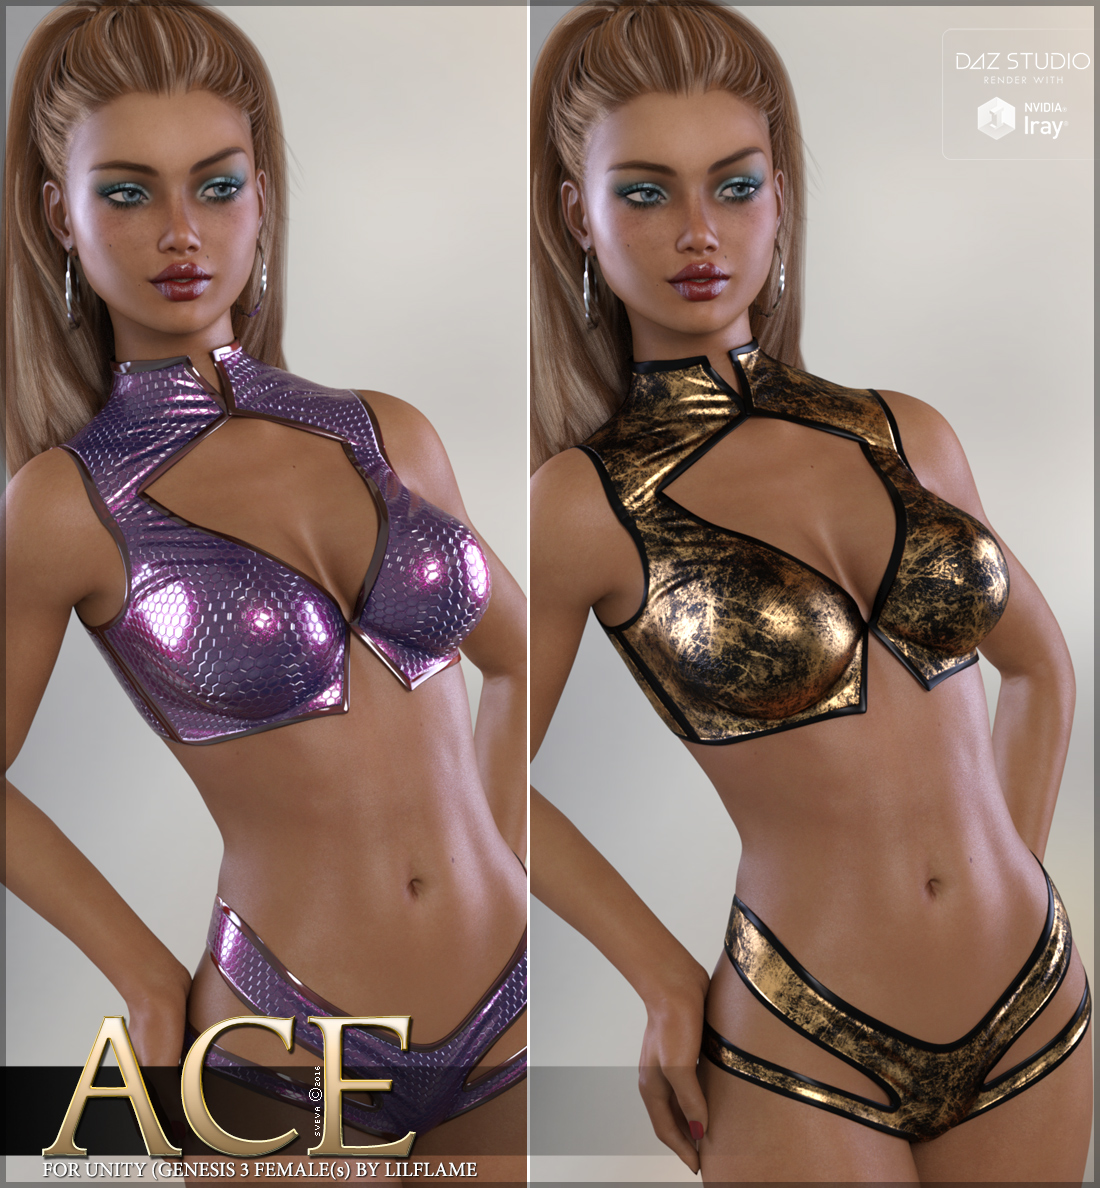 Ace for Unity Genesis 3 Females